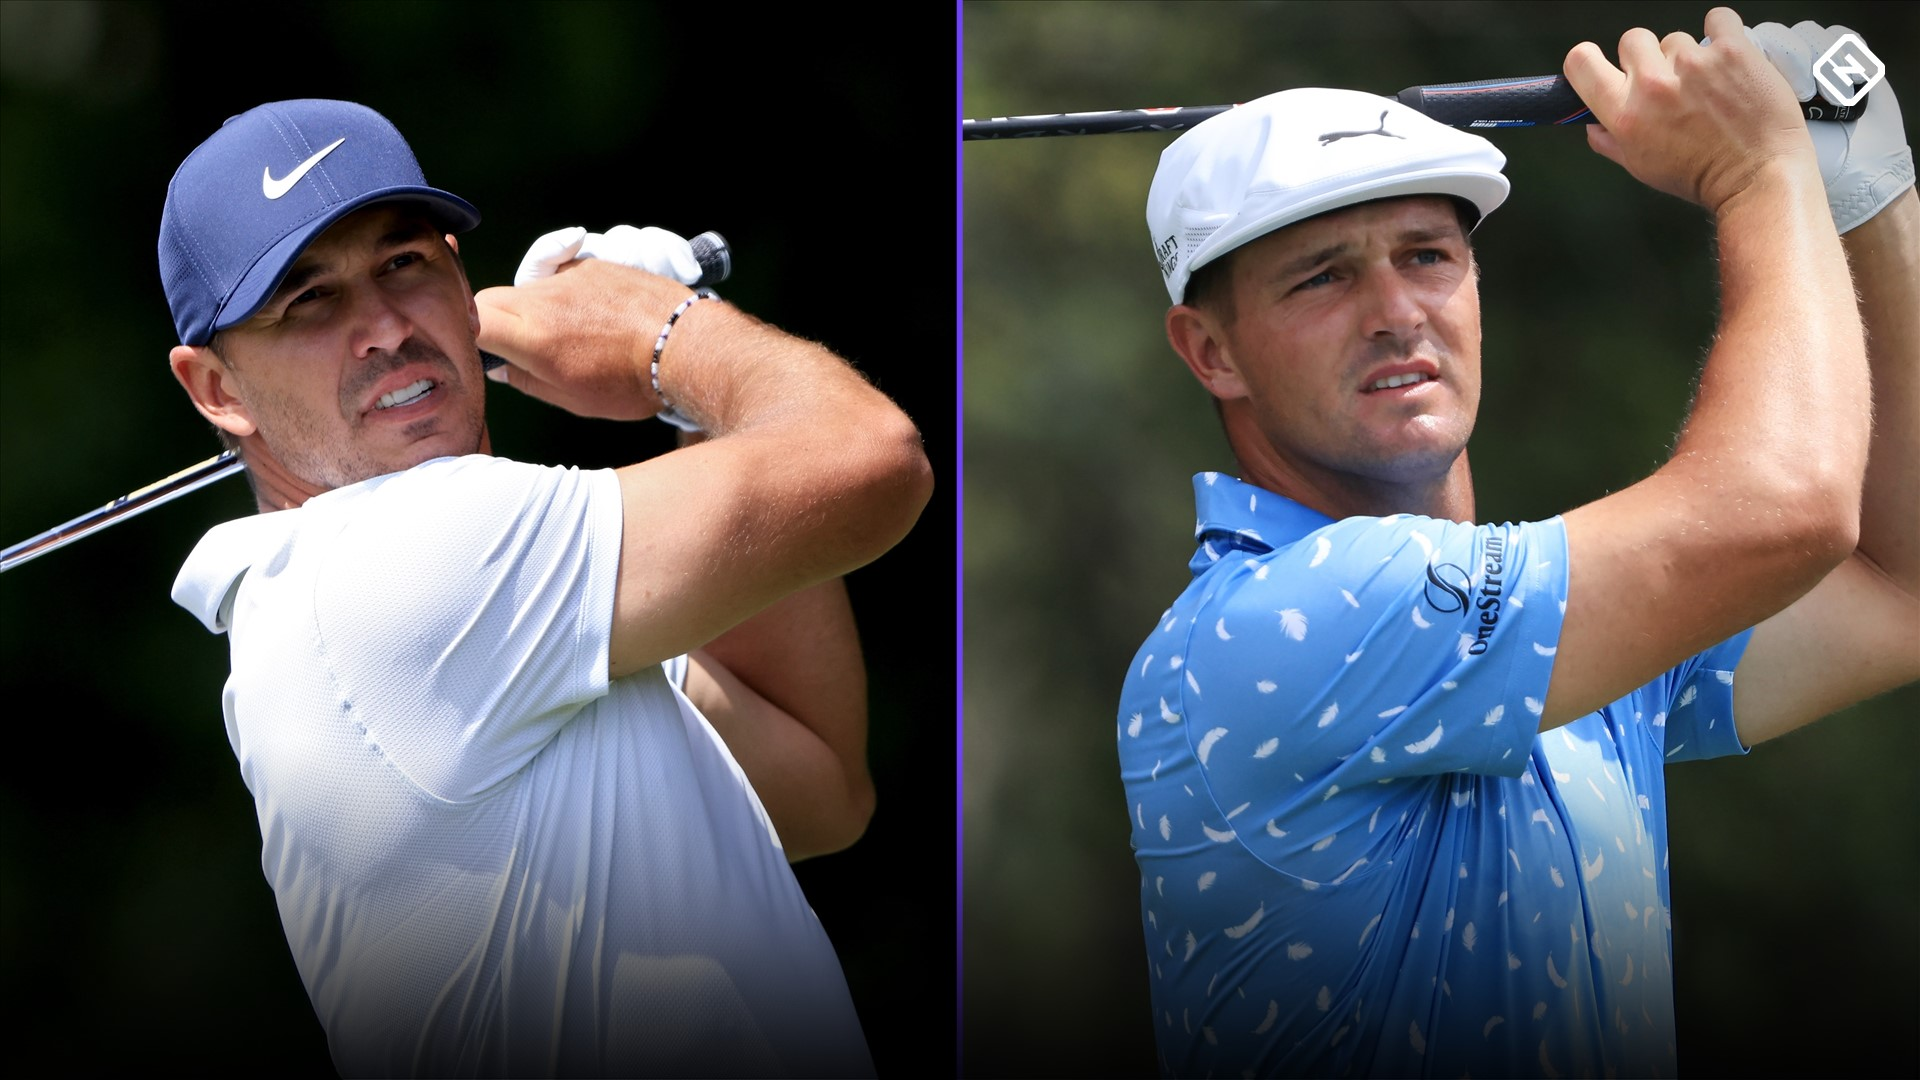 Bryson DeChambeau wants to 'move on' from Brooks Koepka feud ahead of 2021 Ryder Cup